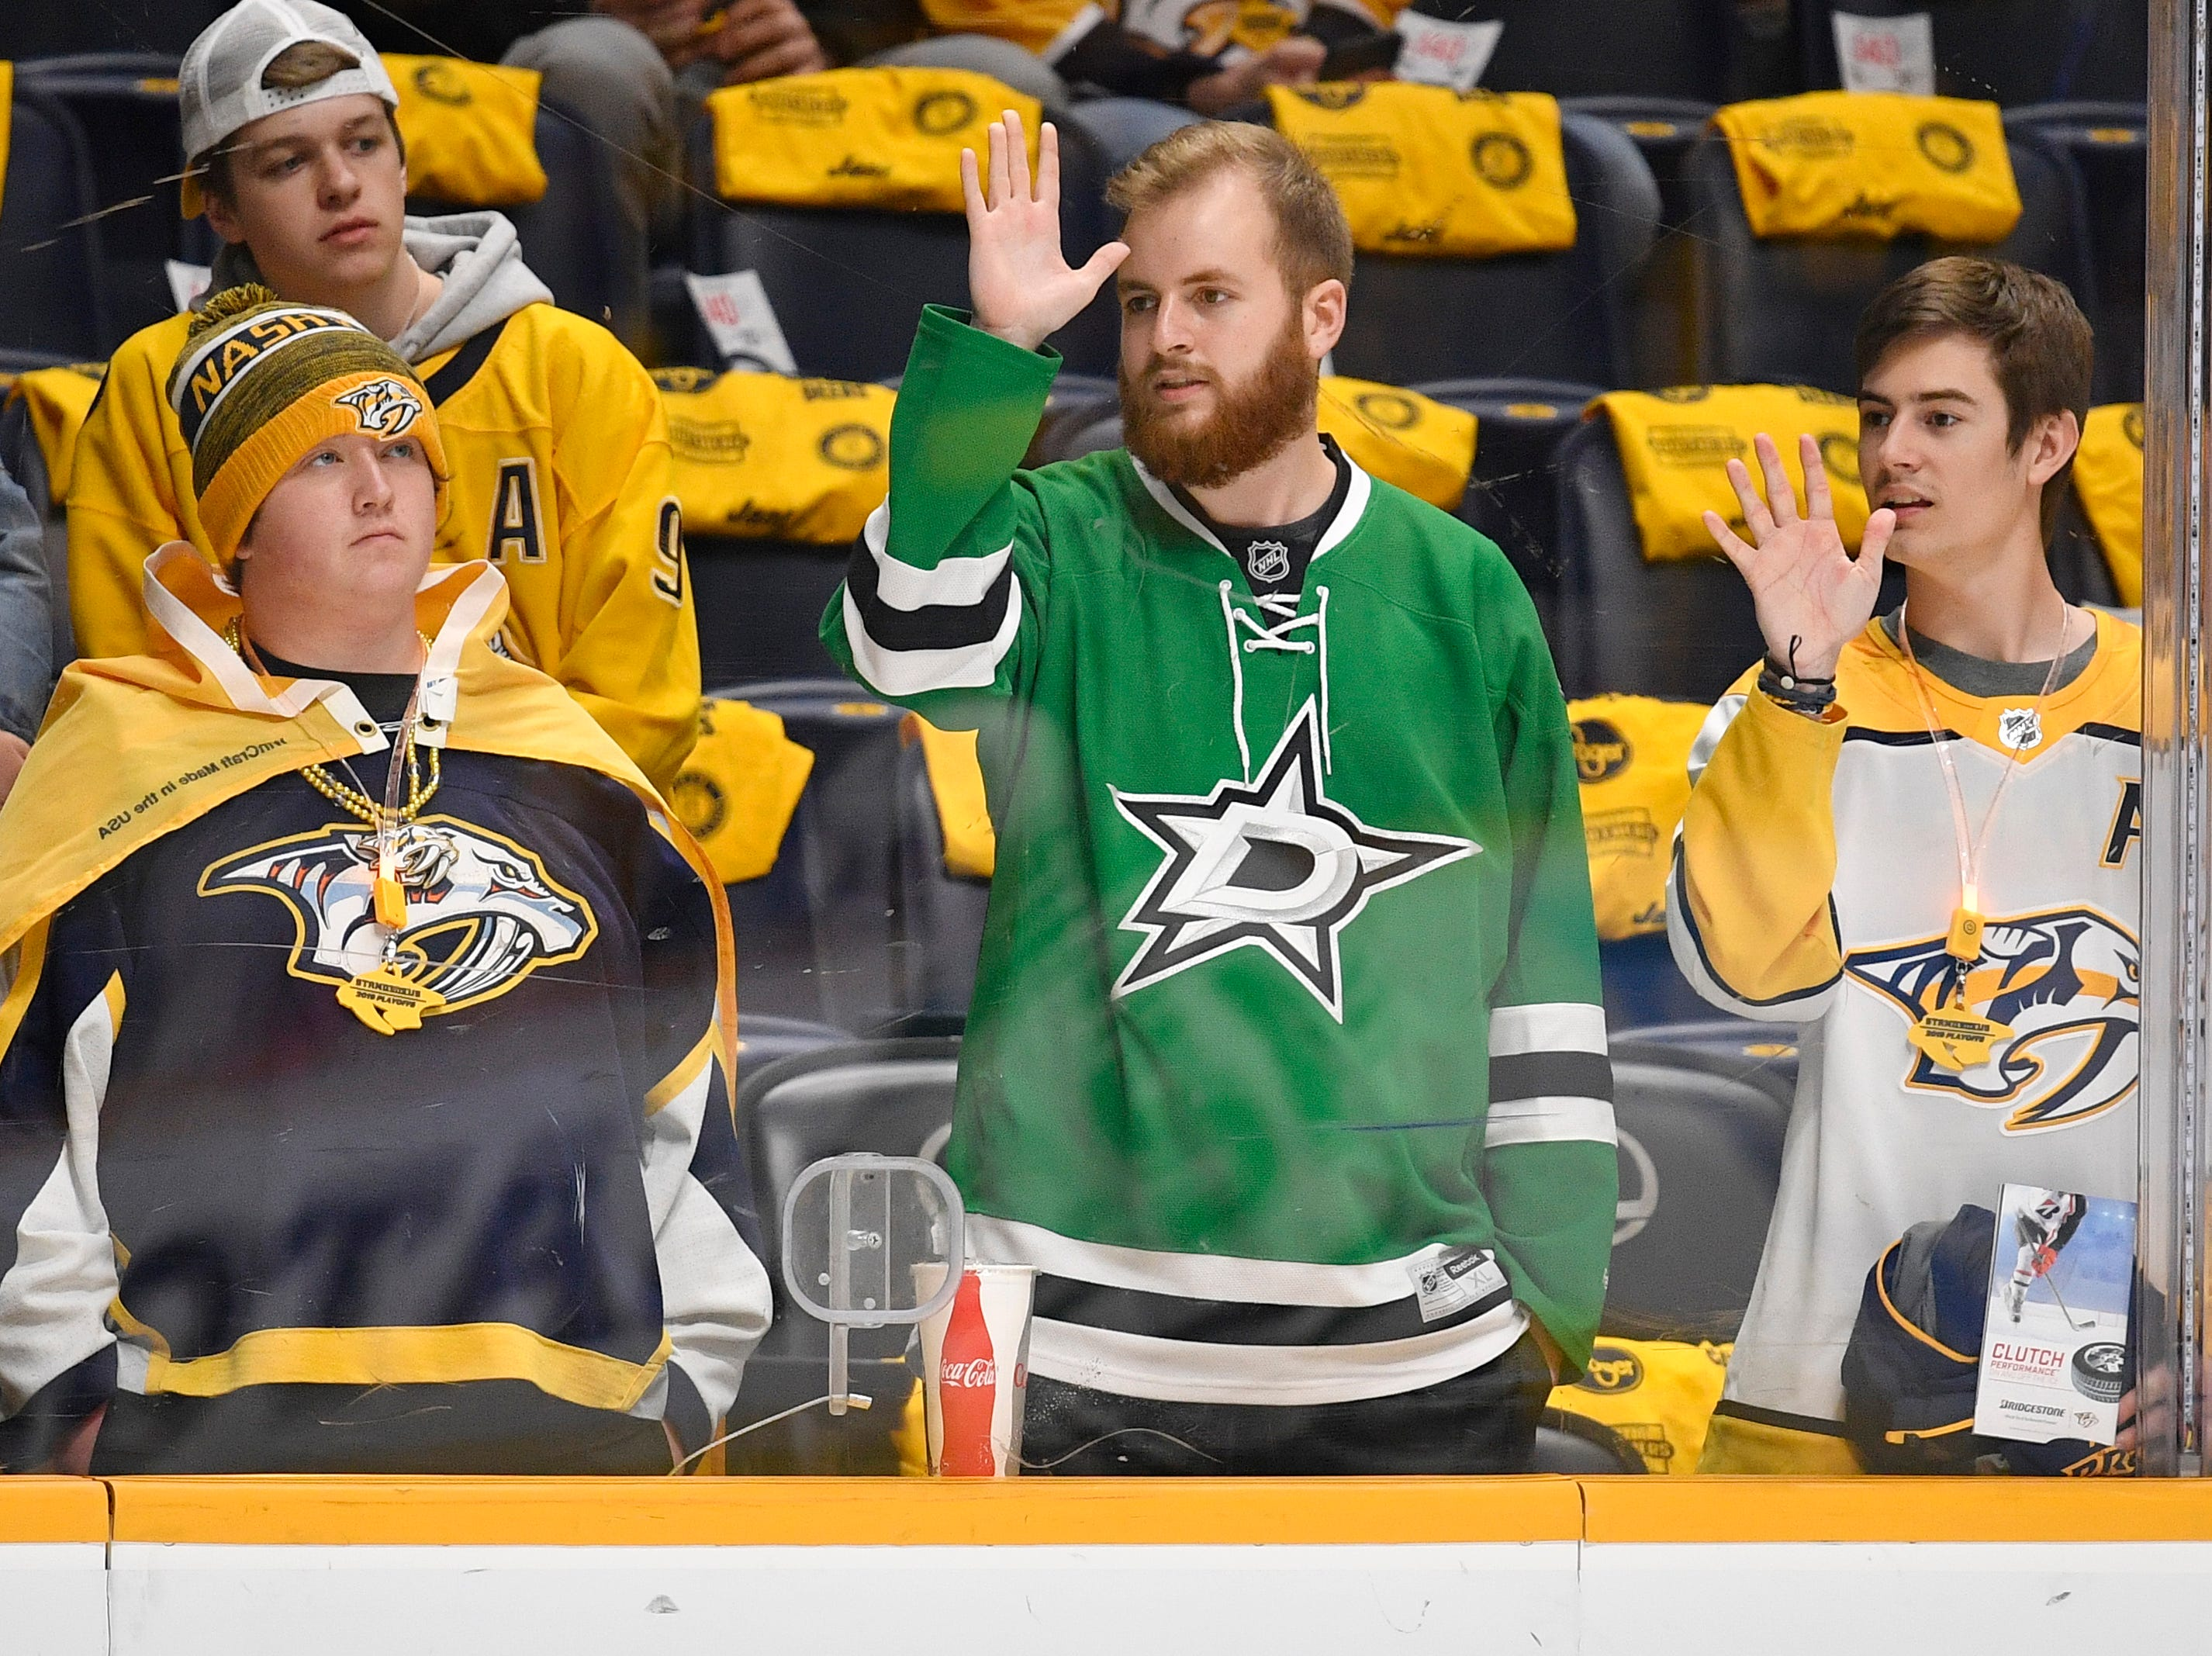 A Dallas fan is surrounded by Nashville fans watching warmups before the divisional semifinal game at Bridgestone Arena in Nashville, Tenn., Wednesday, April 10, 2019.